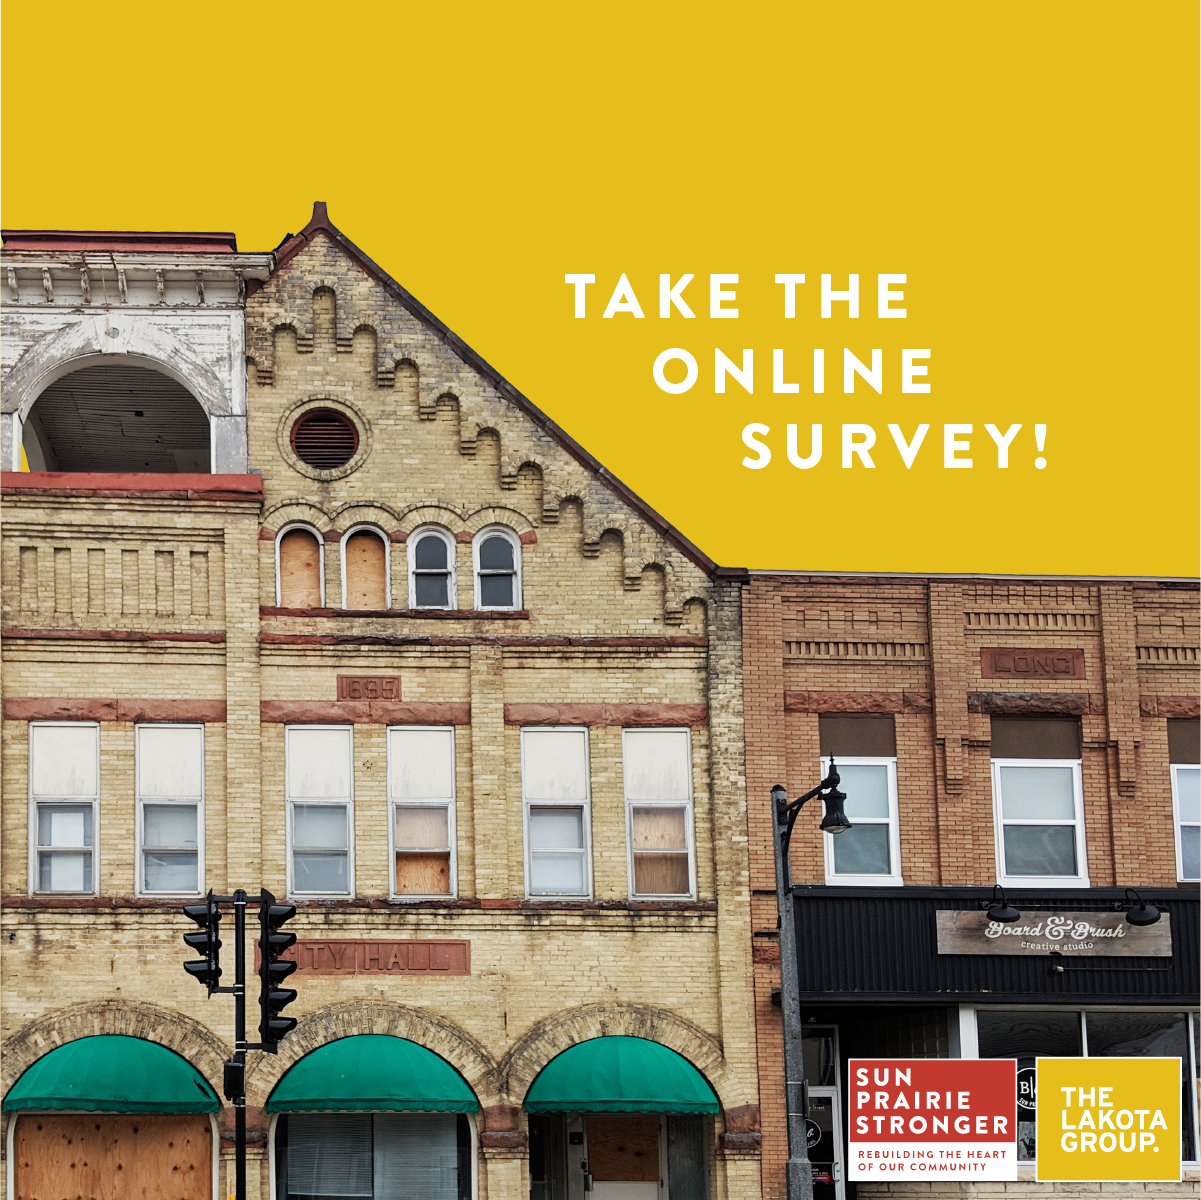 Take the Online Survey